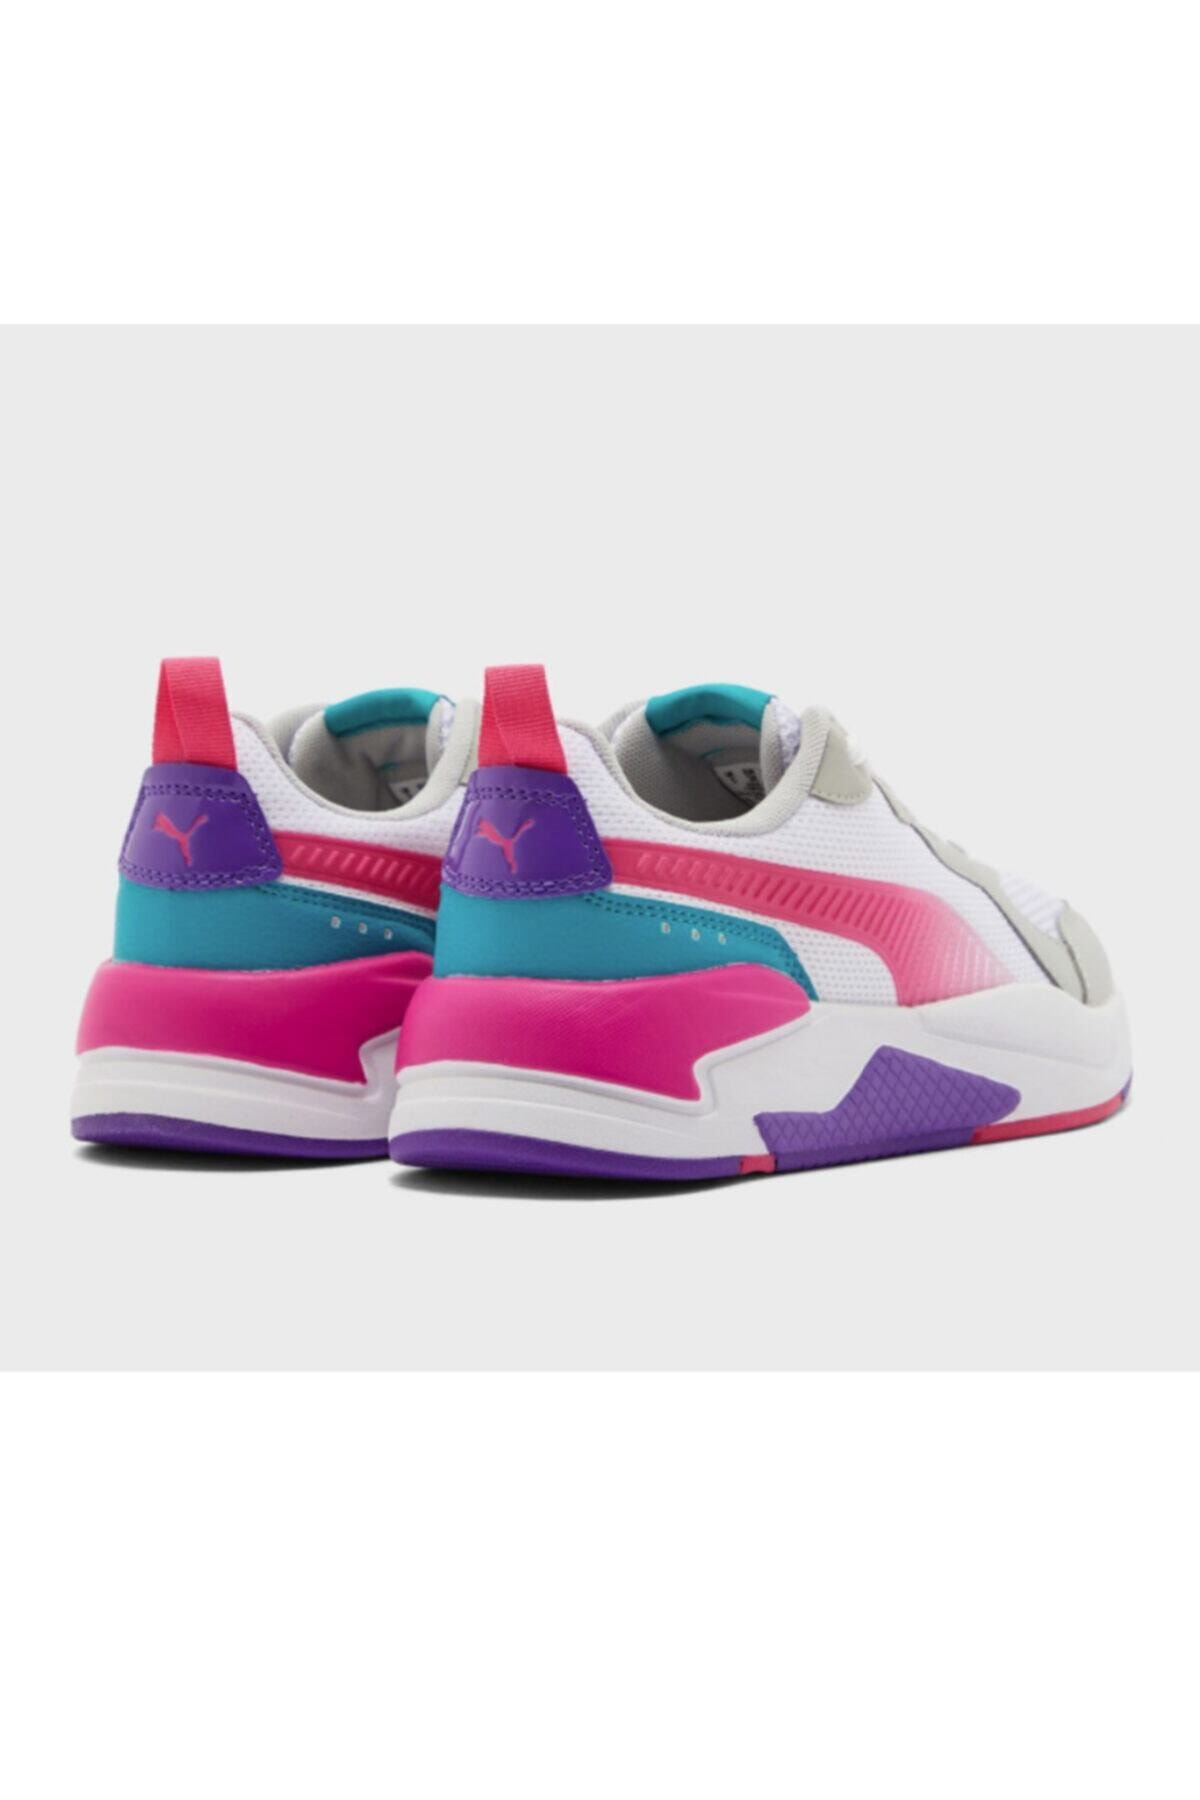 Puma Kadın Pembe X-ray Fantasic Plastic Wins Sneakers 2